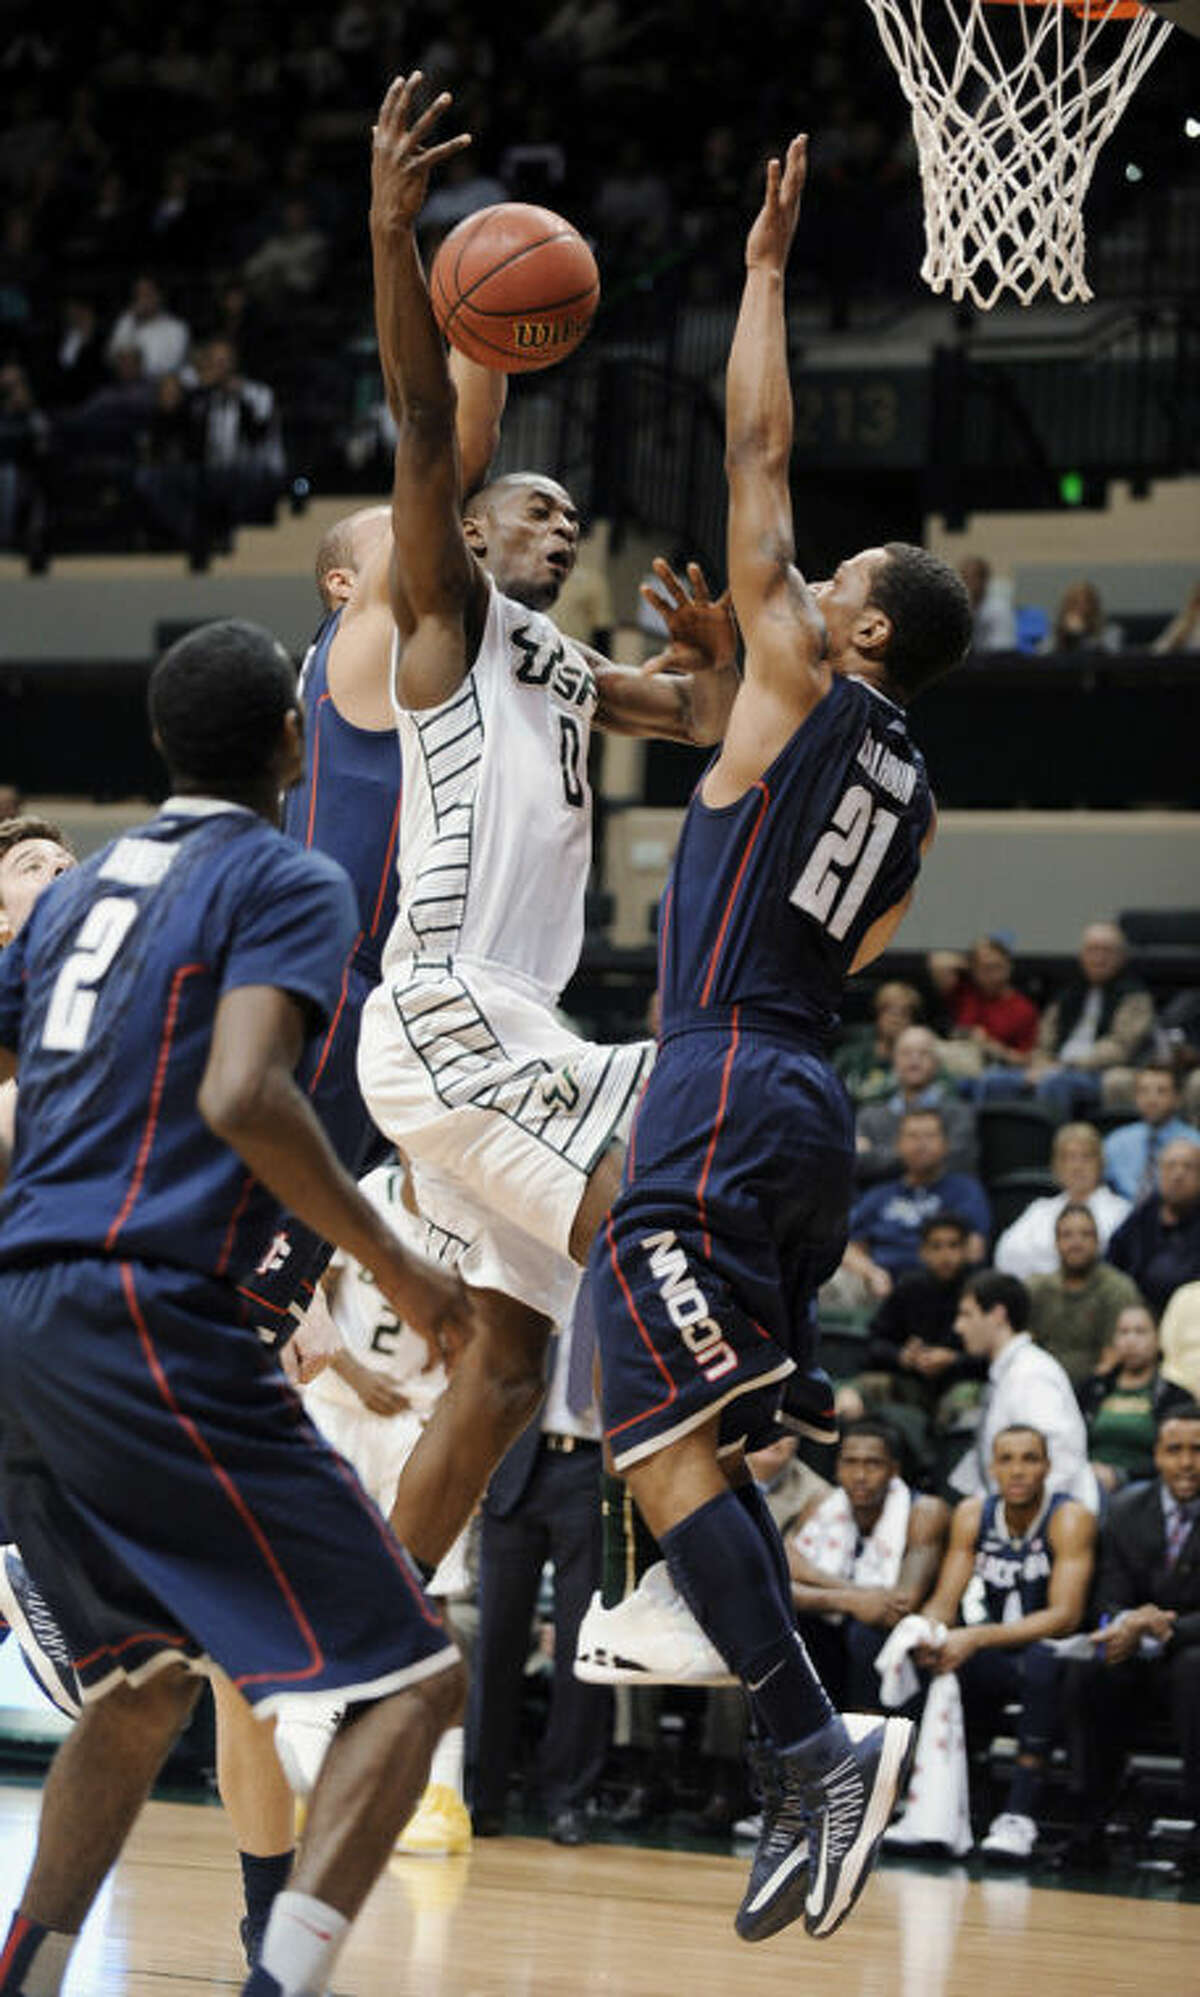 South Florida guard Martino Brock (0) loses control of the ball while attempting to a basket as Connecticut guard Omar Calhoun (21) goes up to block during the first half of an NCAA college basketball game Wednesday, March 6, 2013, in Tampa, Fla. (AP Photo/The Tampa Tribune, Chris Urso) ST. PETE, LAKELAND, BRADENTON OUT , MAGS OUT LOCAL TV OUT: WTSP CH 10, WFTS CH 28, WTVT CH 13, BAYNEWS 9